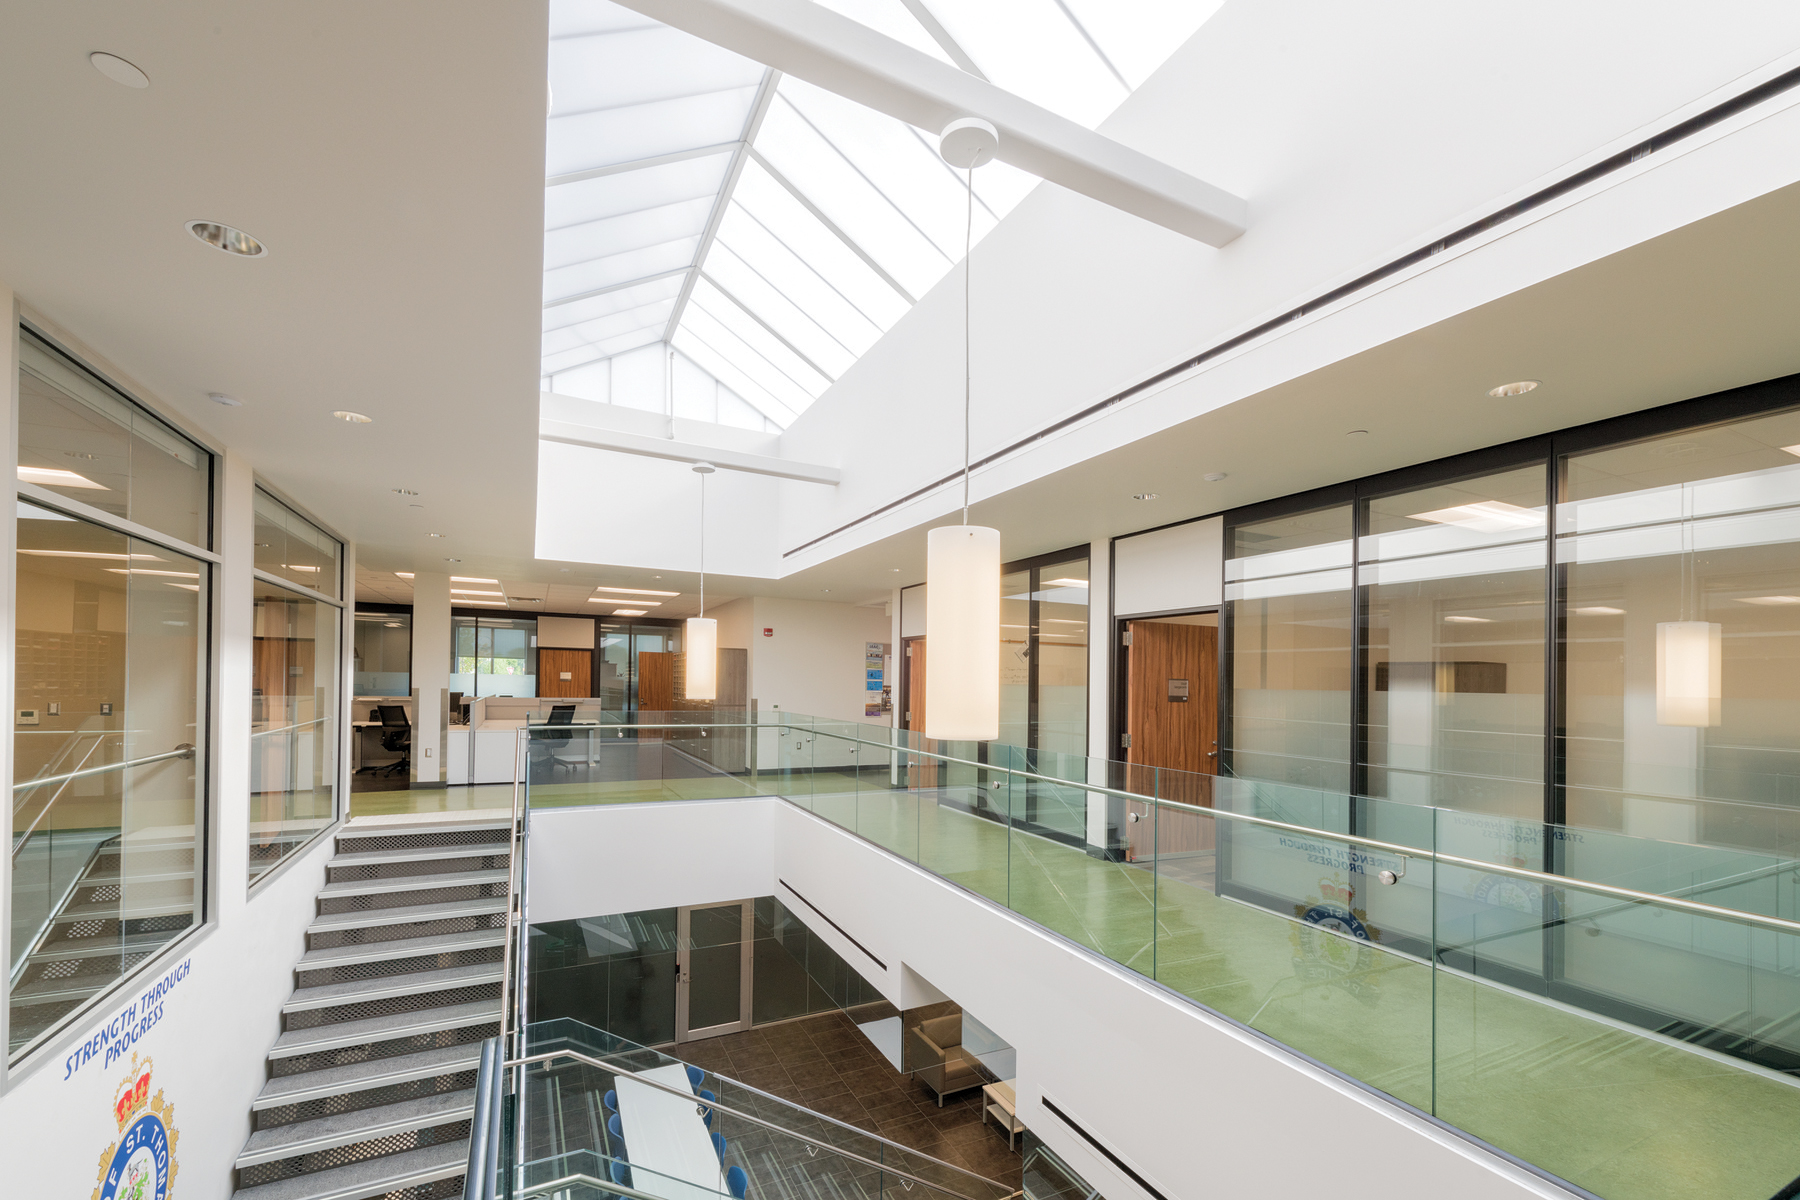 Open staircase leading to second storey perimeter corridor with glazed meeting rooms and large skylight